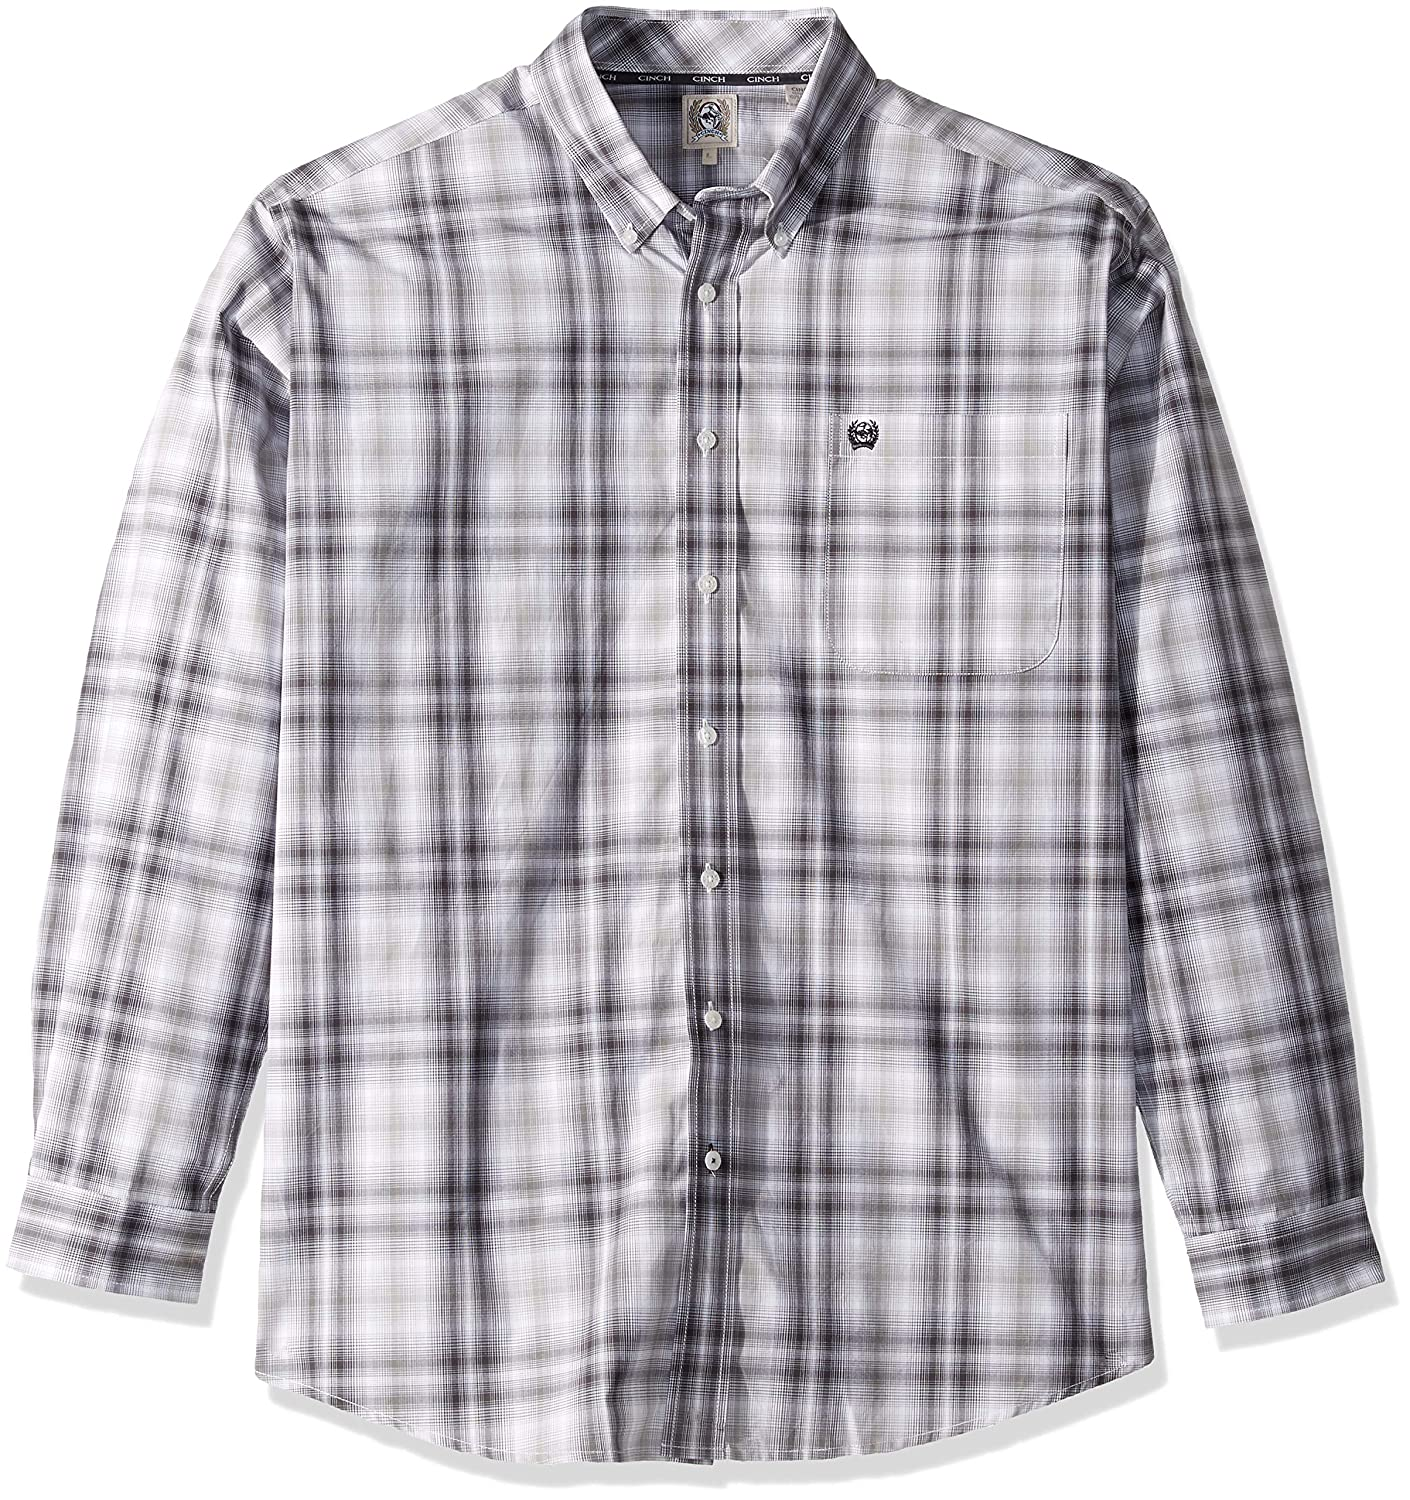 Cinch Mens Classic Fit Long Sleeve Button One Open Pocket Plaid Shirt